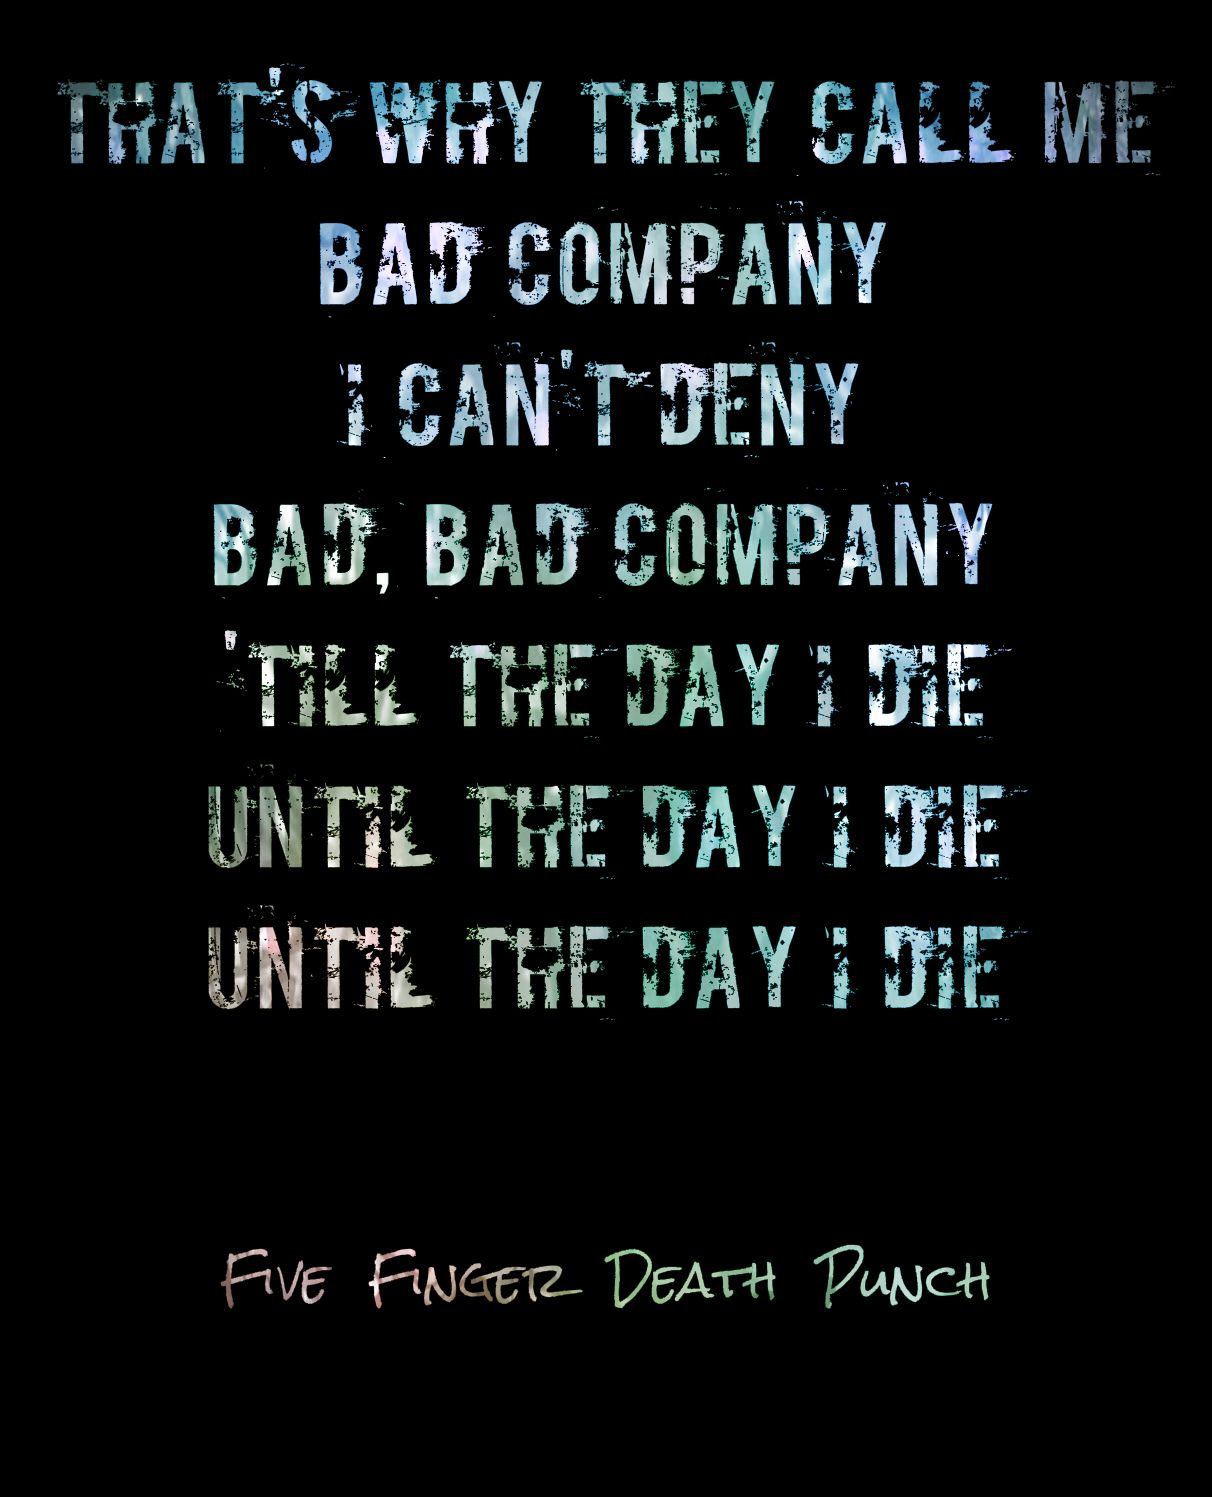 five finger death punch bad company free mp3 download